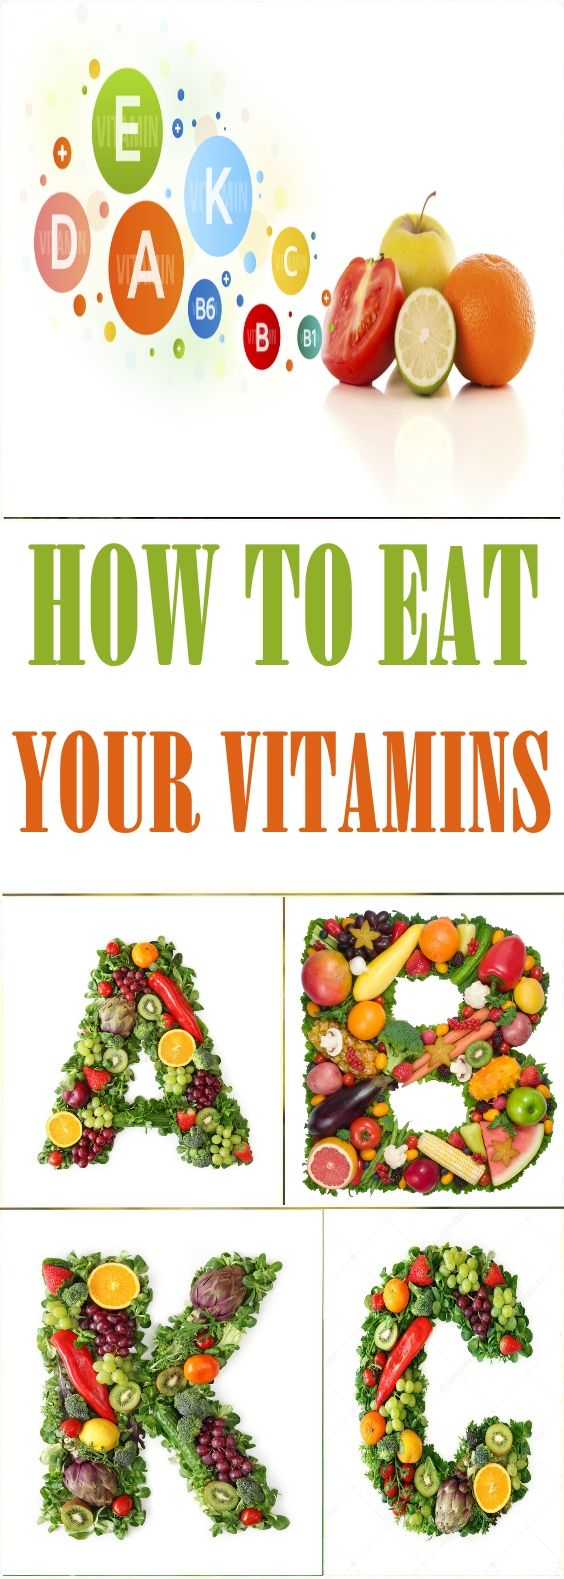 How to eat your vitamins